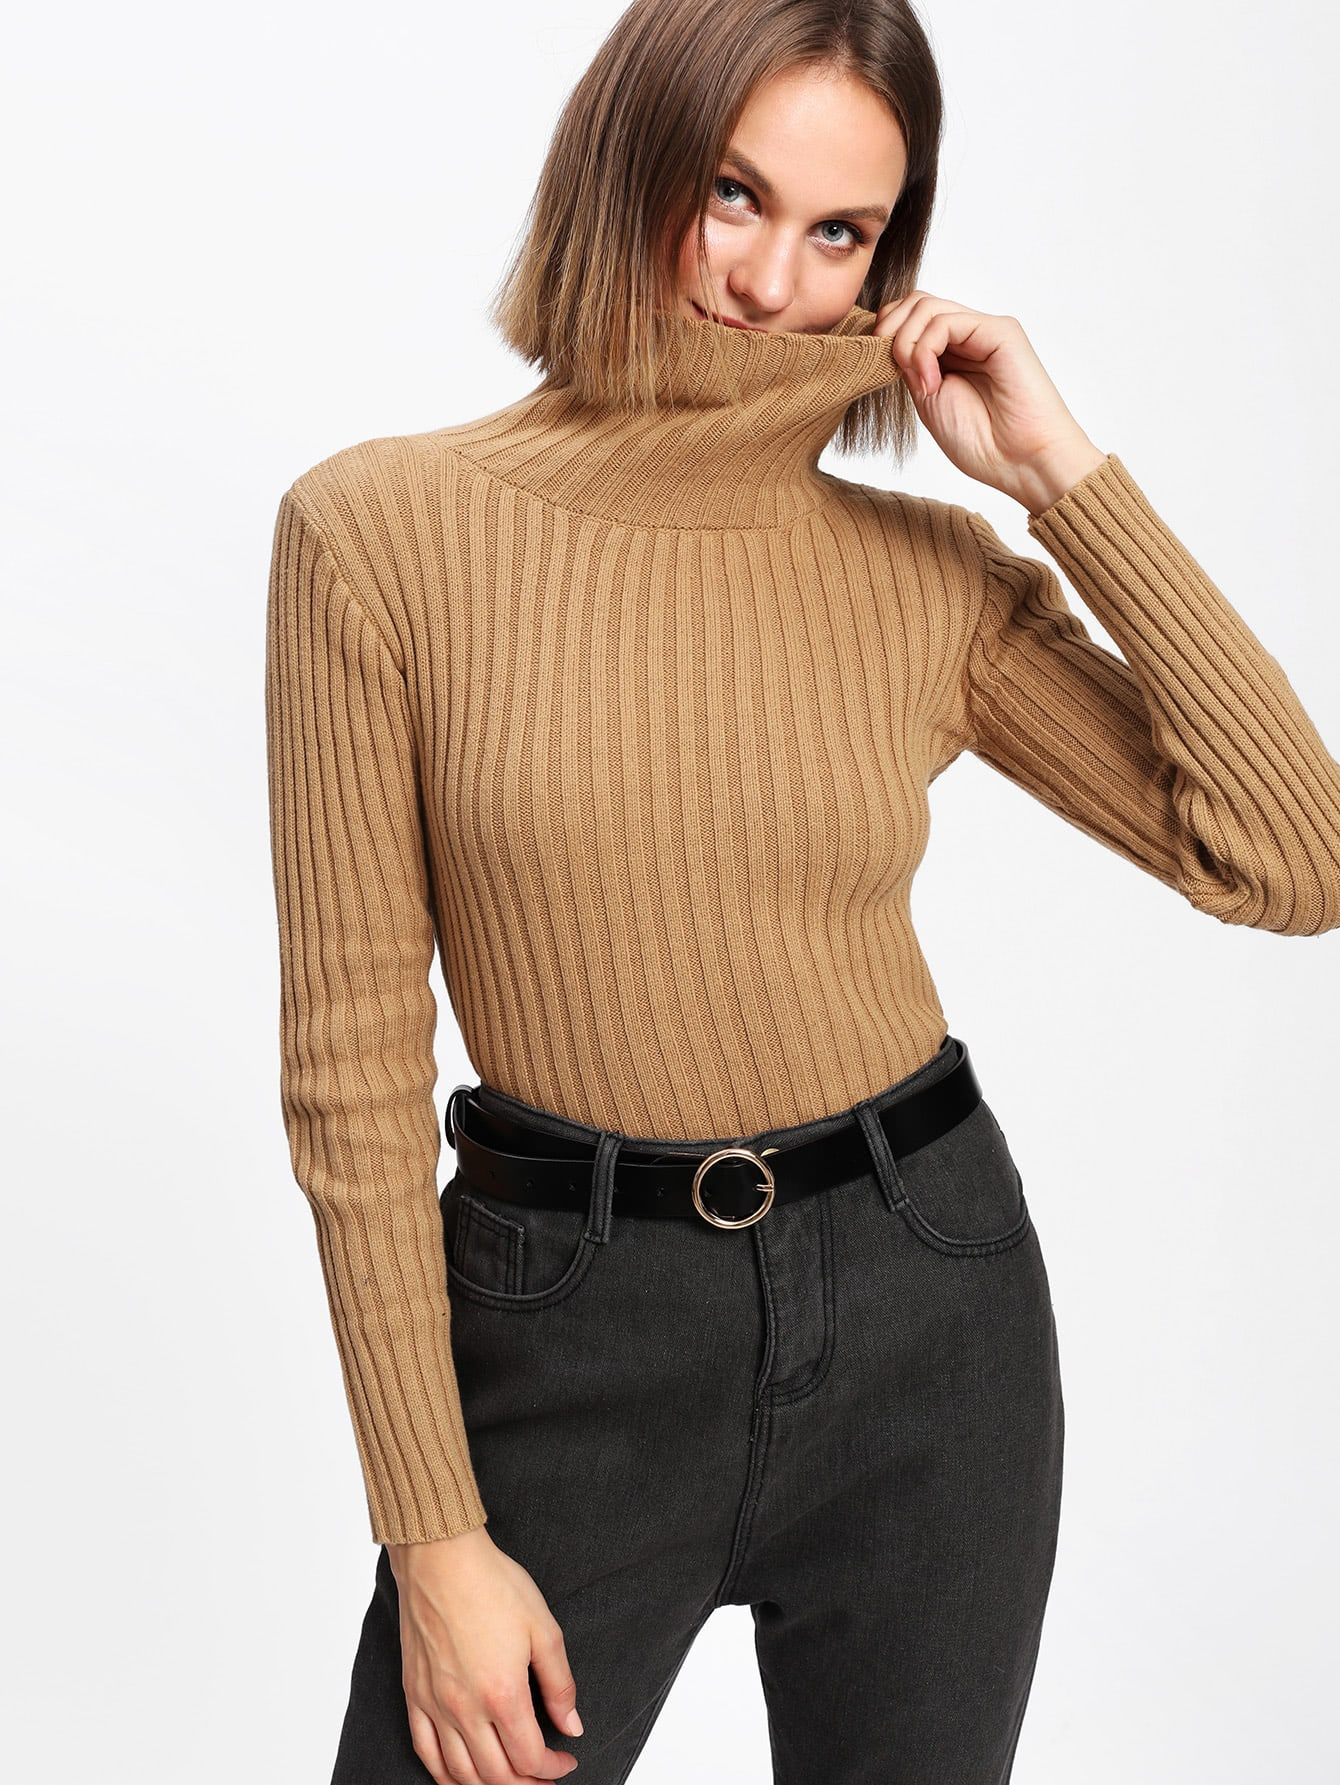 Rib Knit Turtleneck Sweater sweater171115202